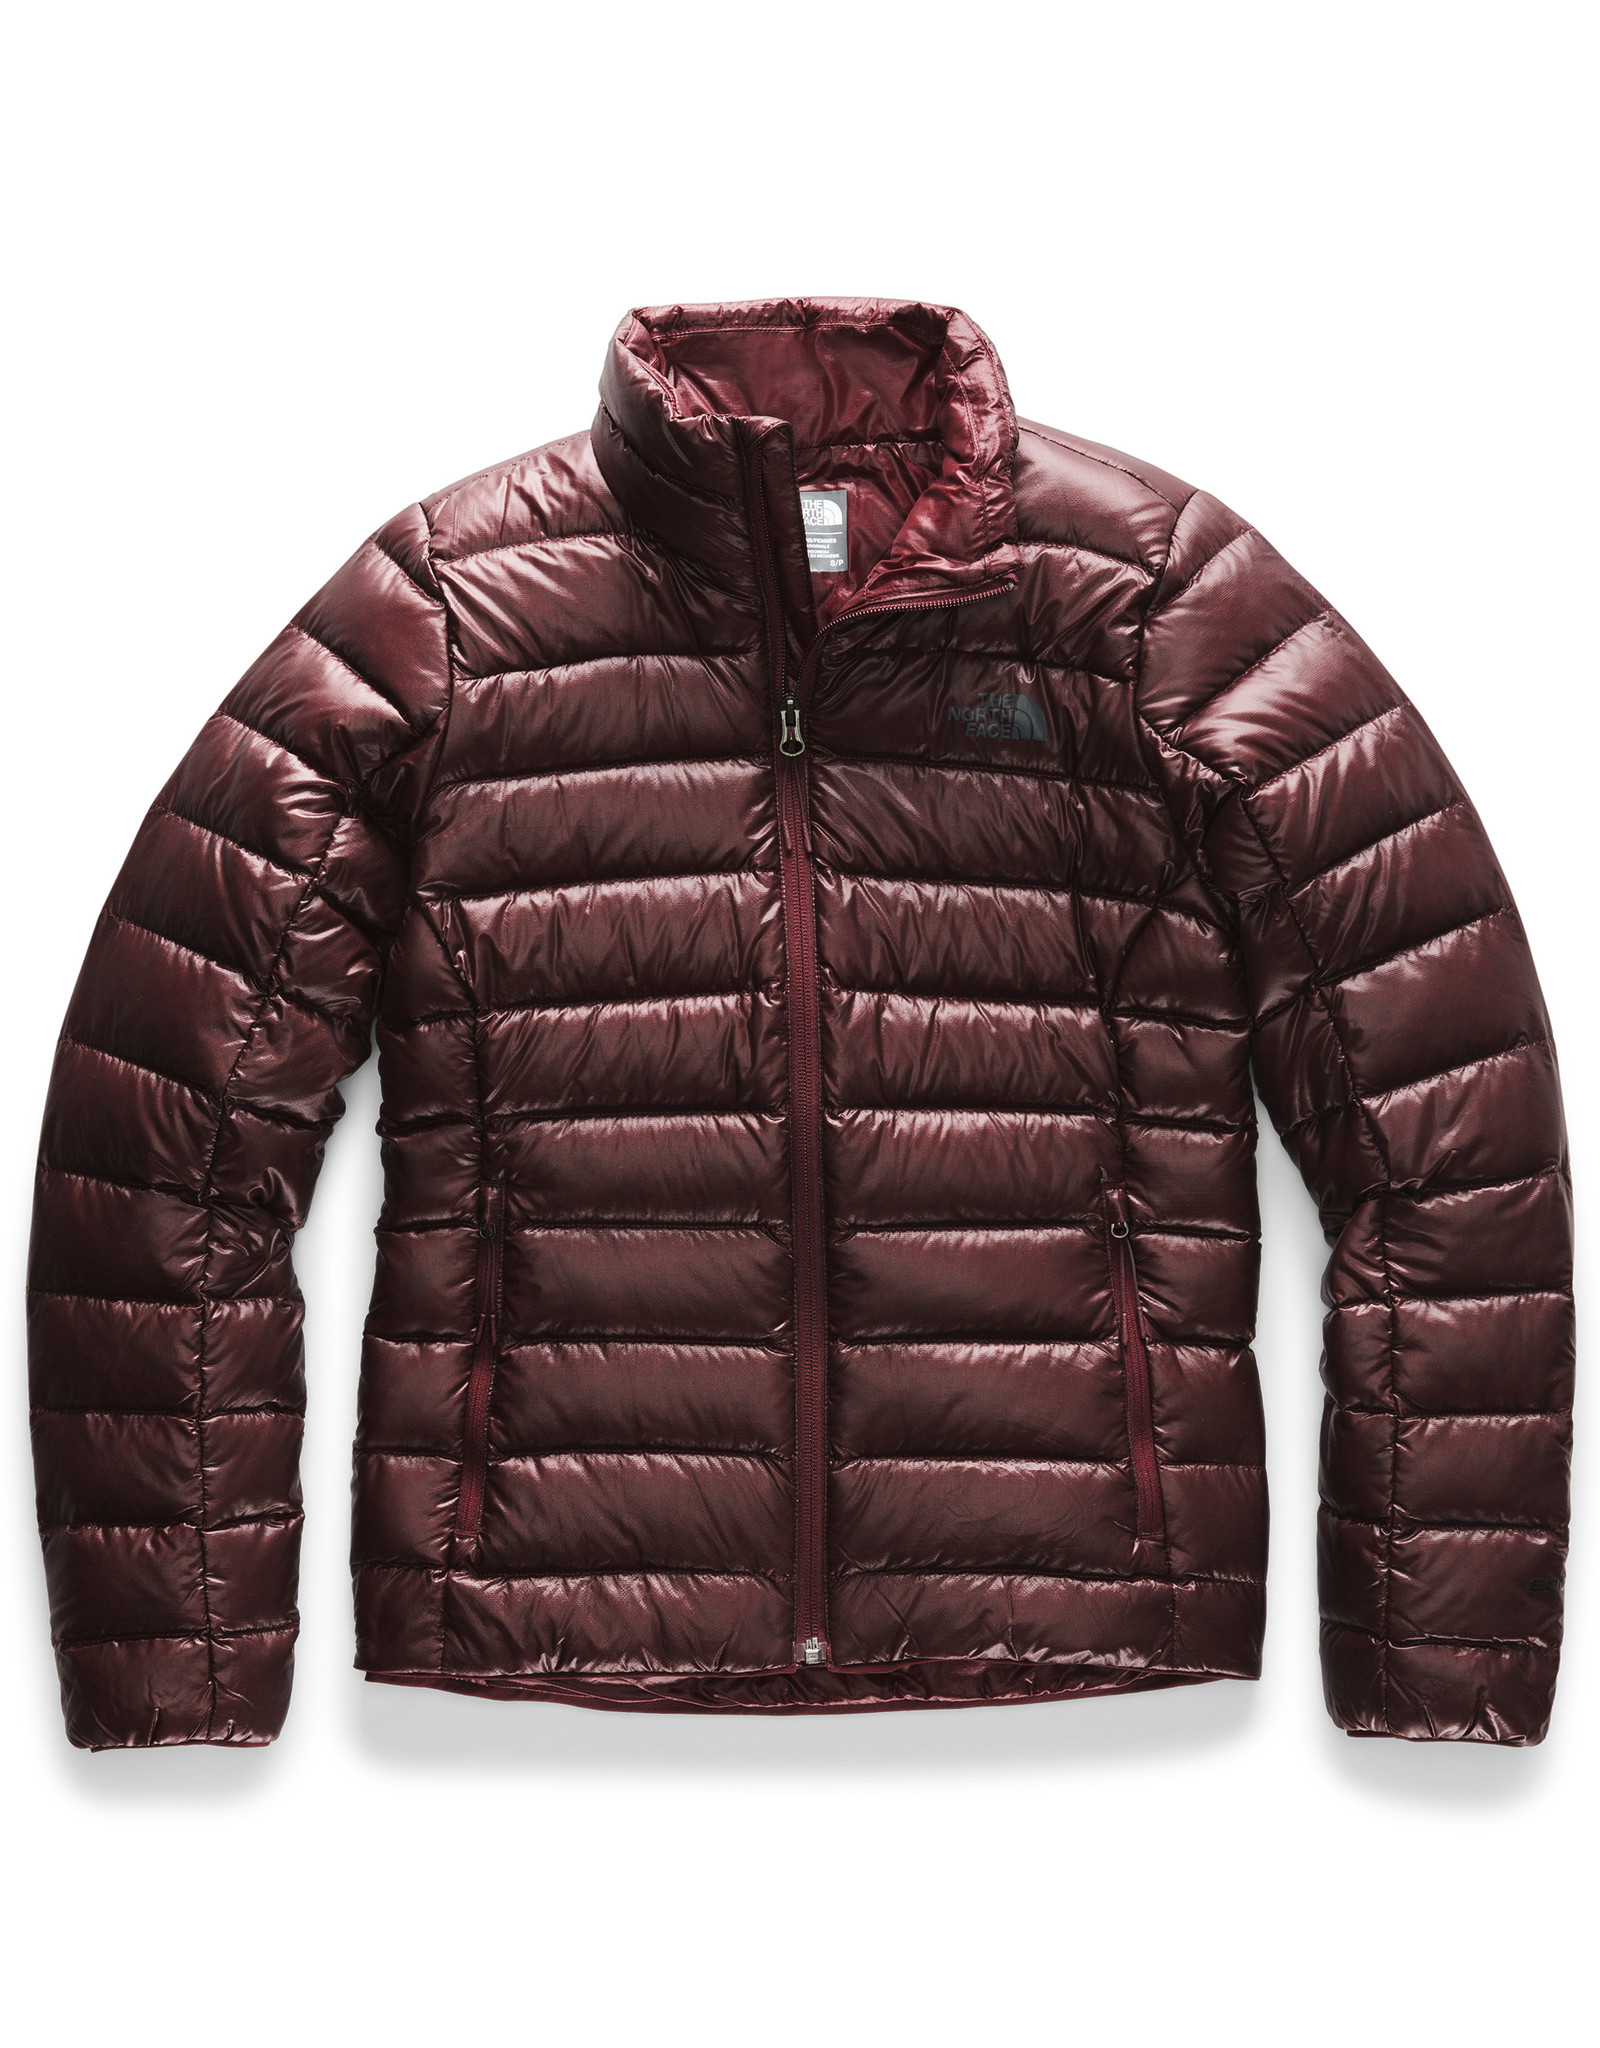 The North Face The North Face Women's Sierra Peak Jacket - F2019